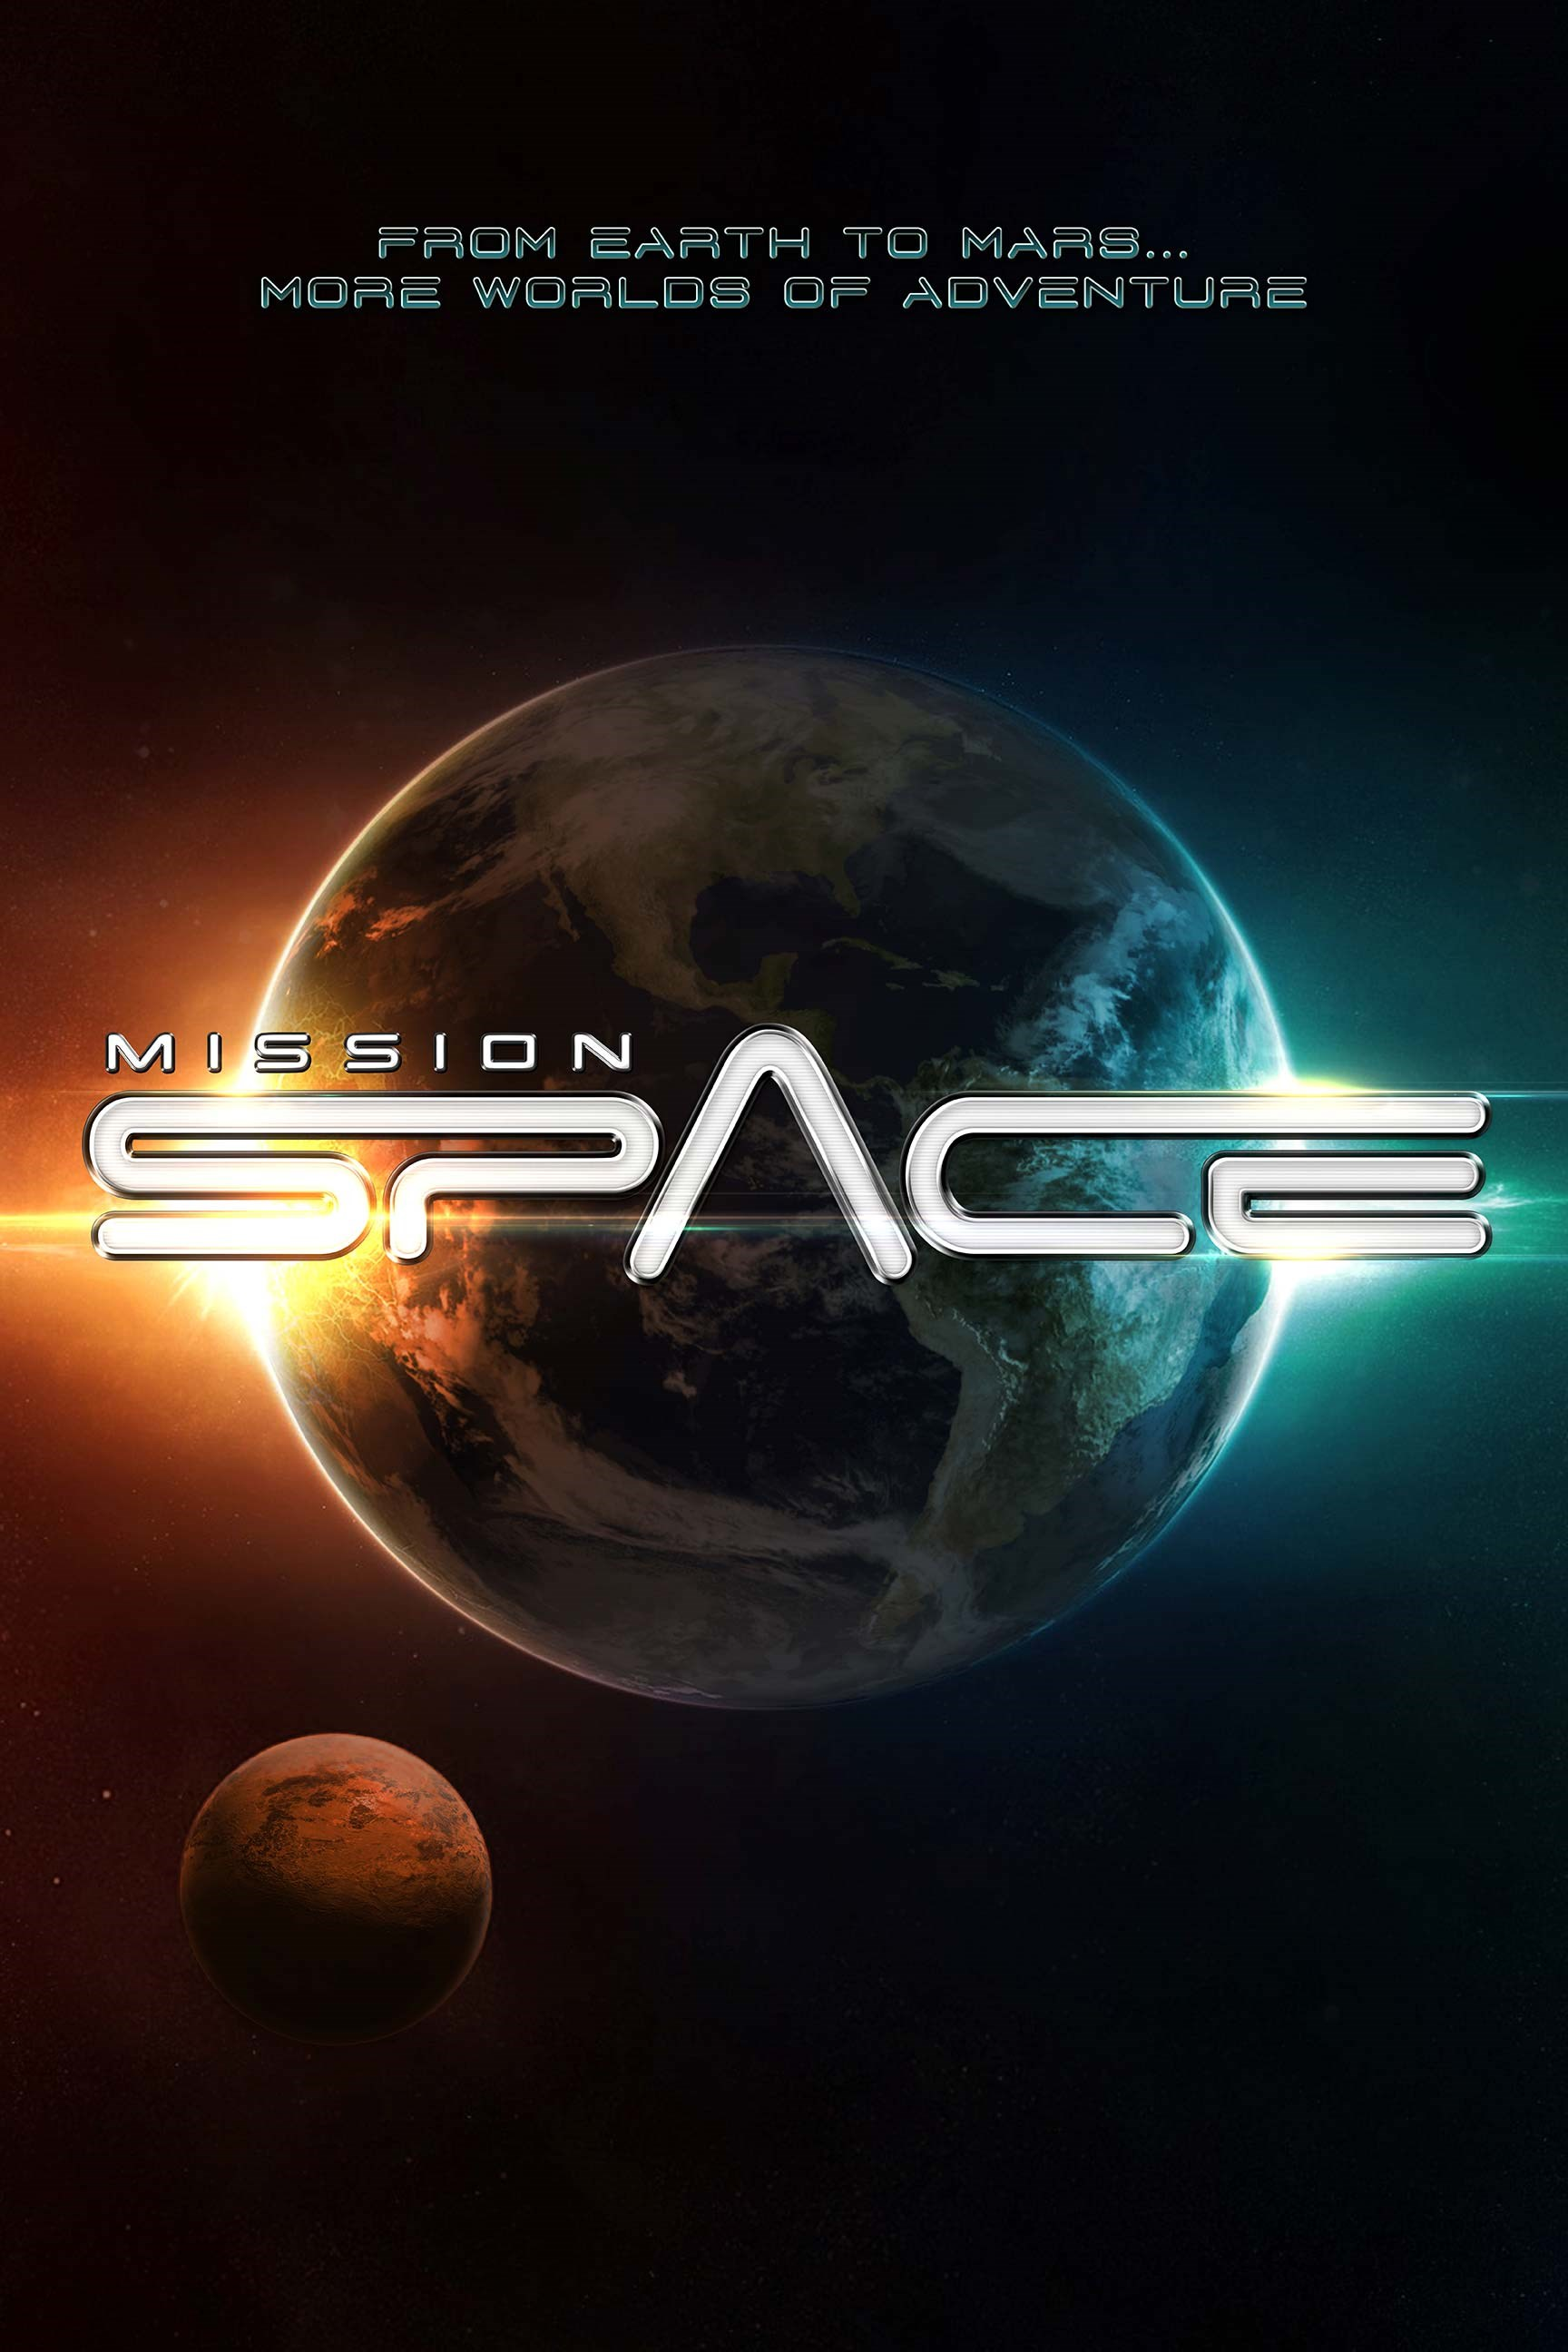 Misson SPACE overview